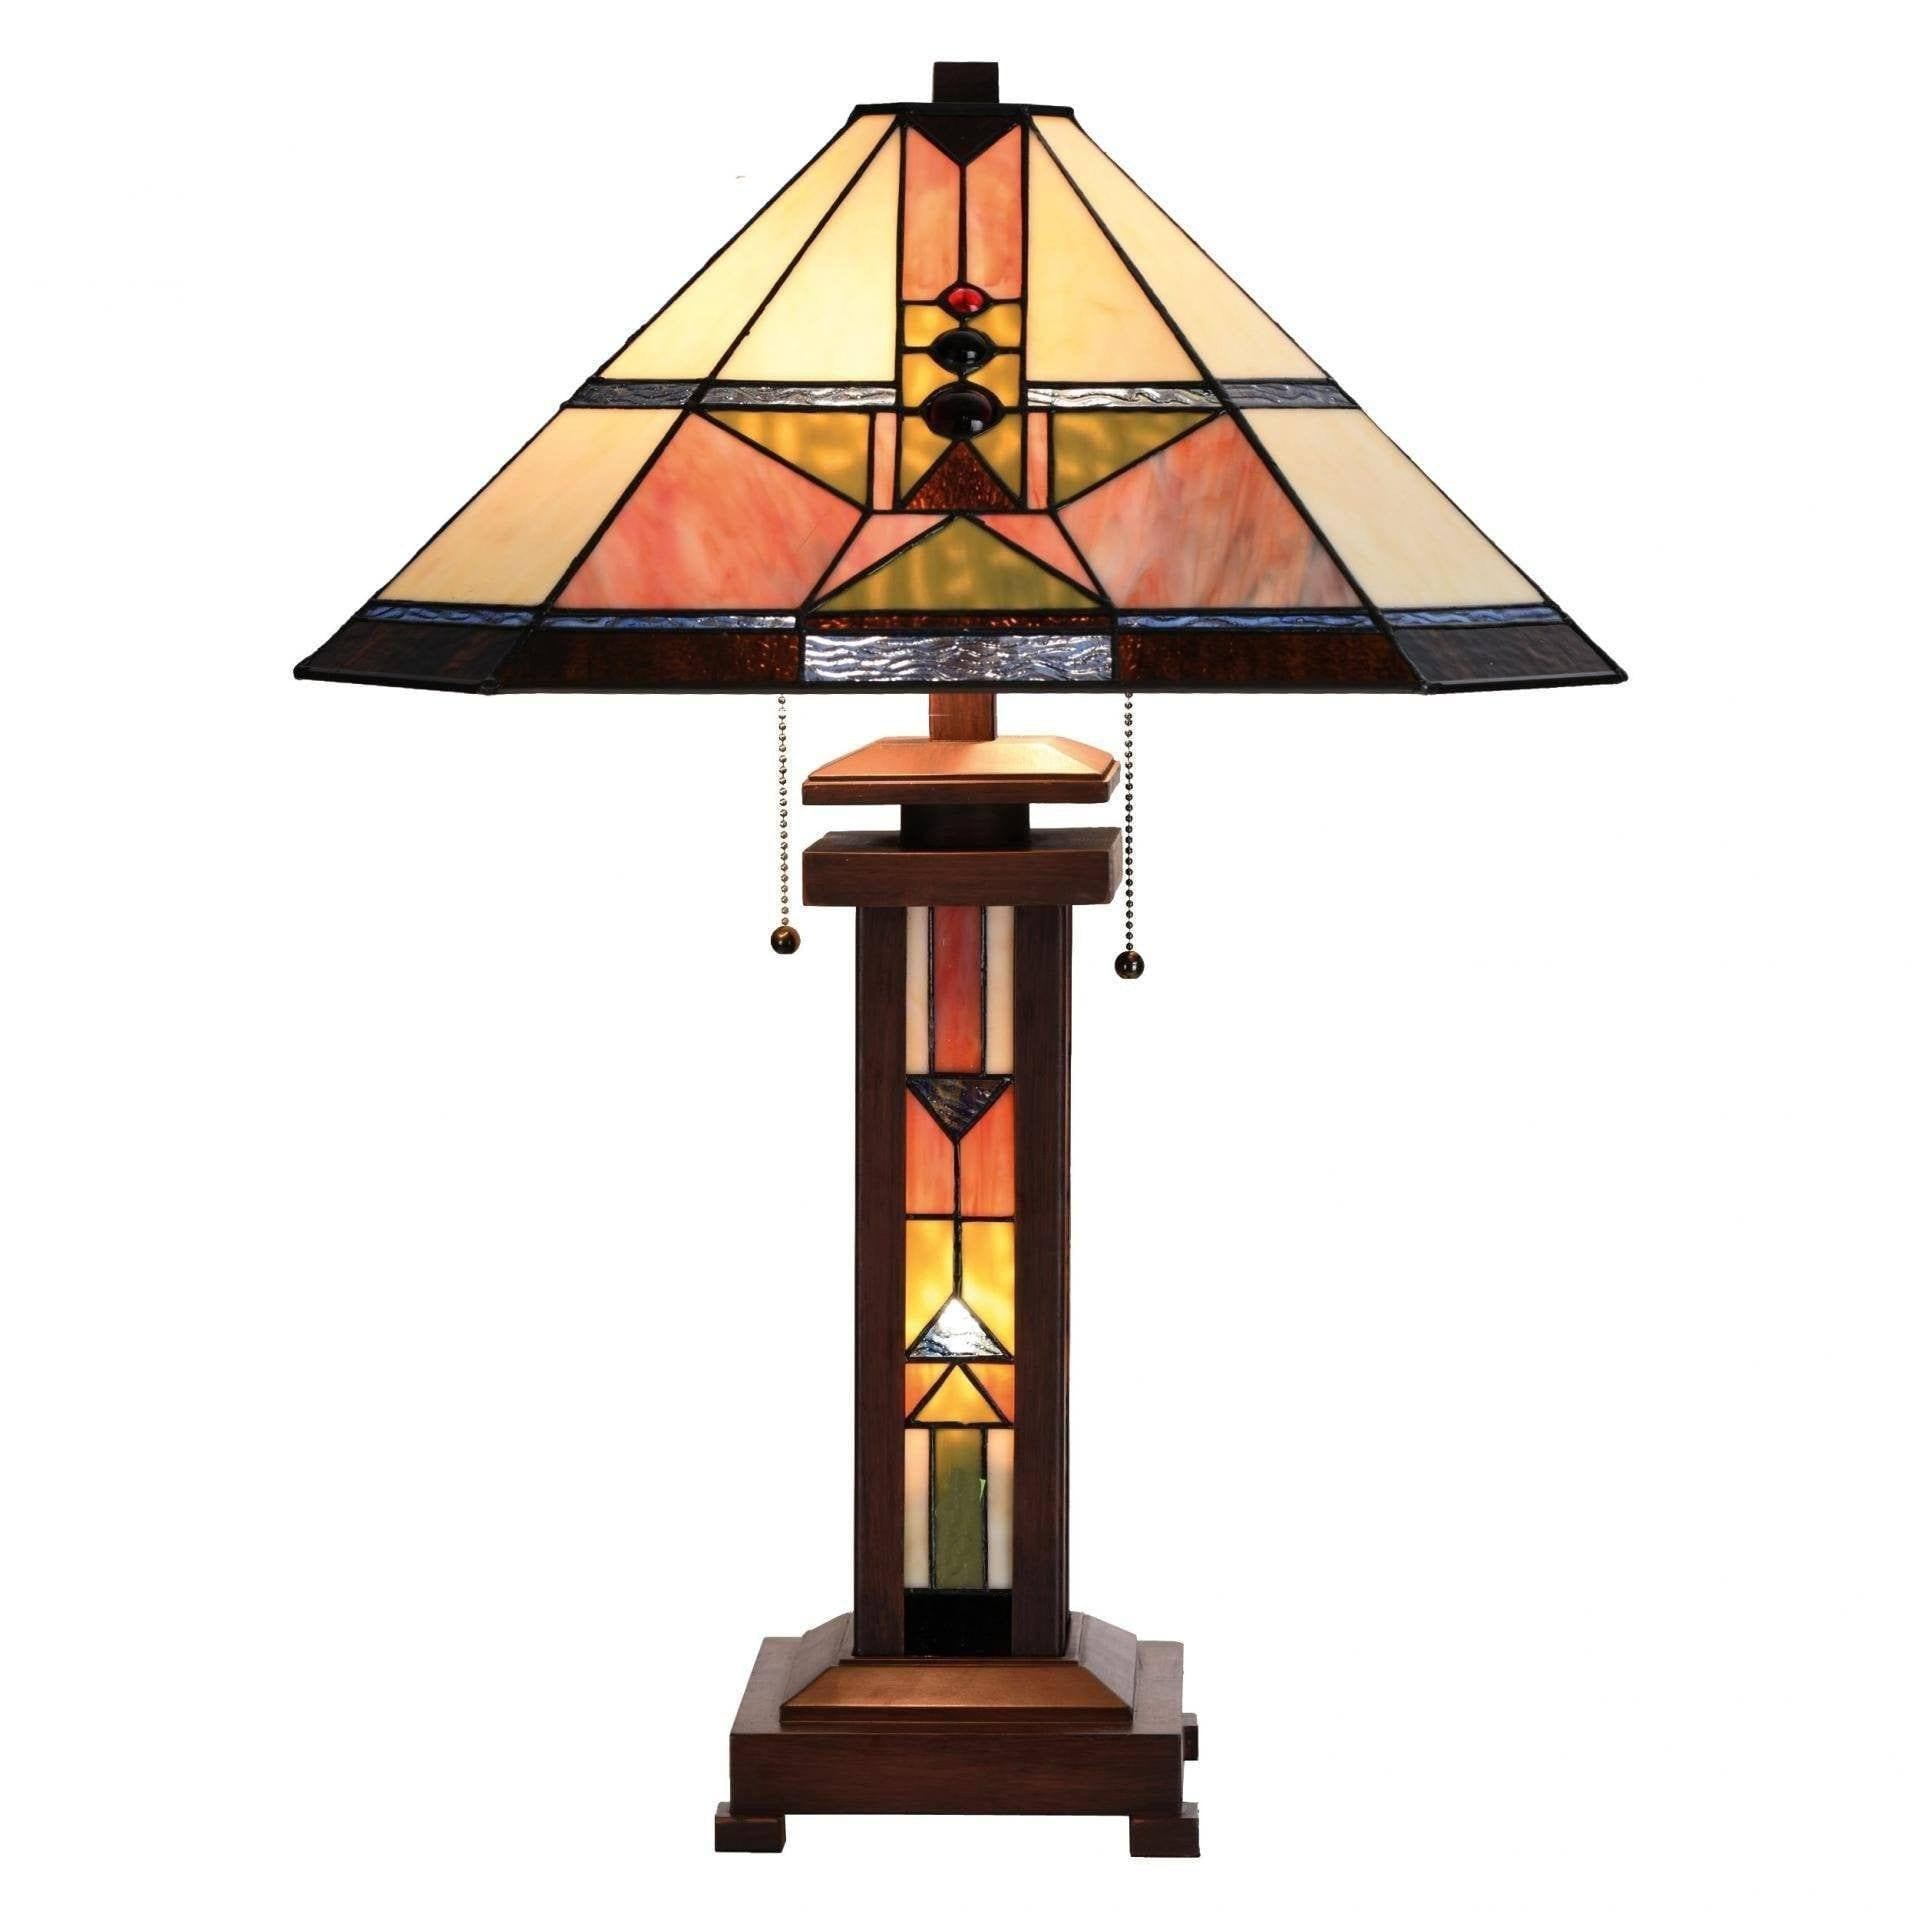 Tiffany Lamps Tiffany Style Stained Glass Lamps Tiffany Lighting Direct